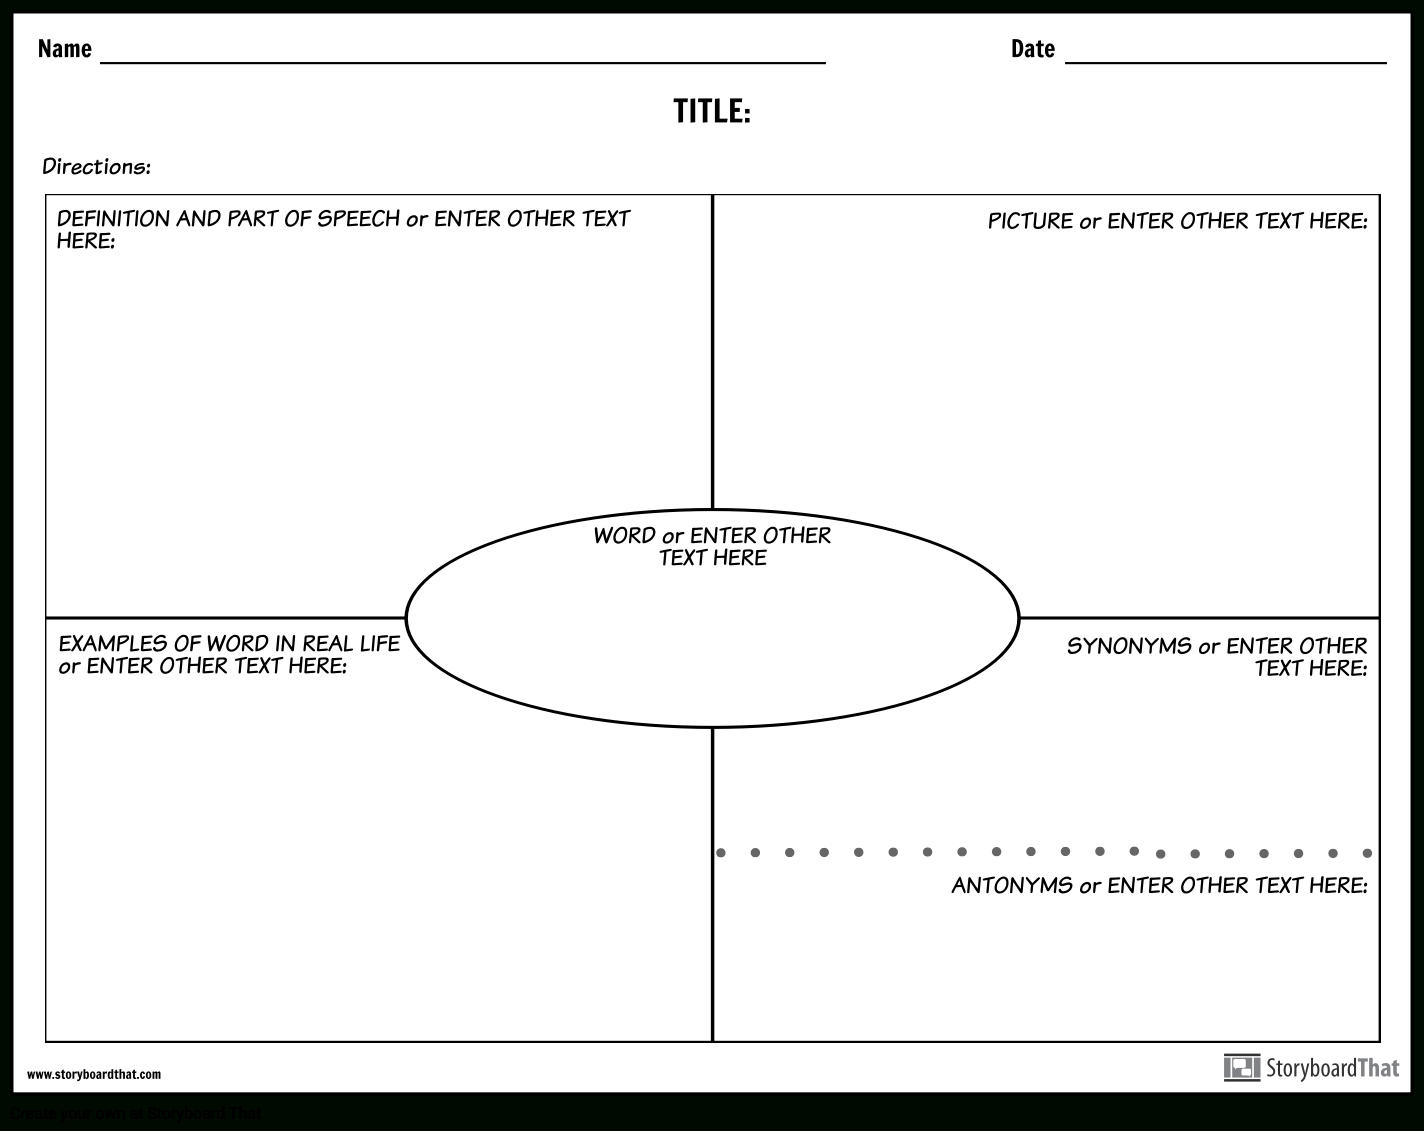 Create Vocabulary Worksheets | Vocabulary Templates Throughout Vocabulary Words Worksheet Template